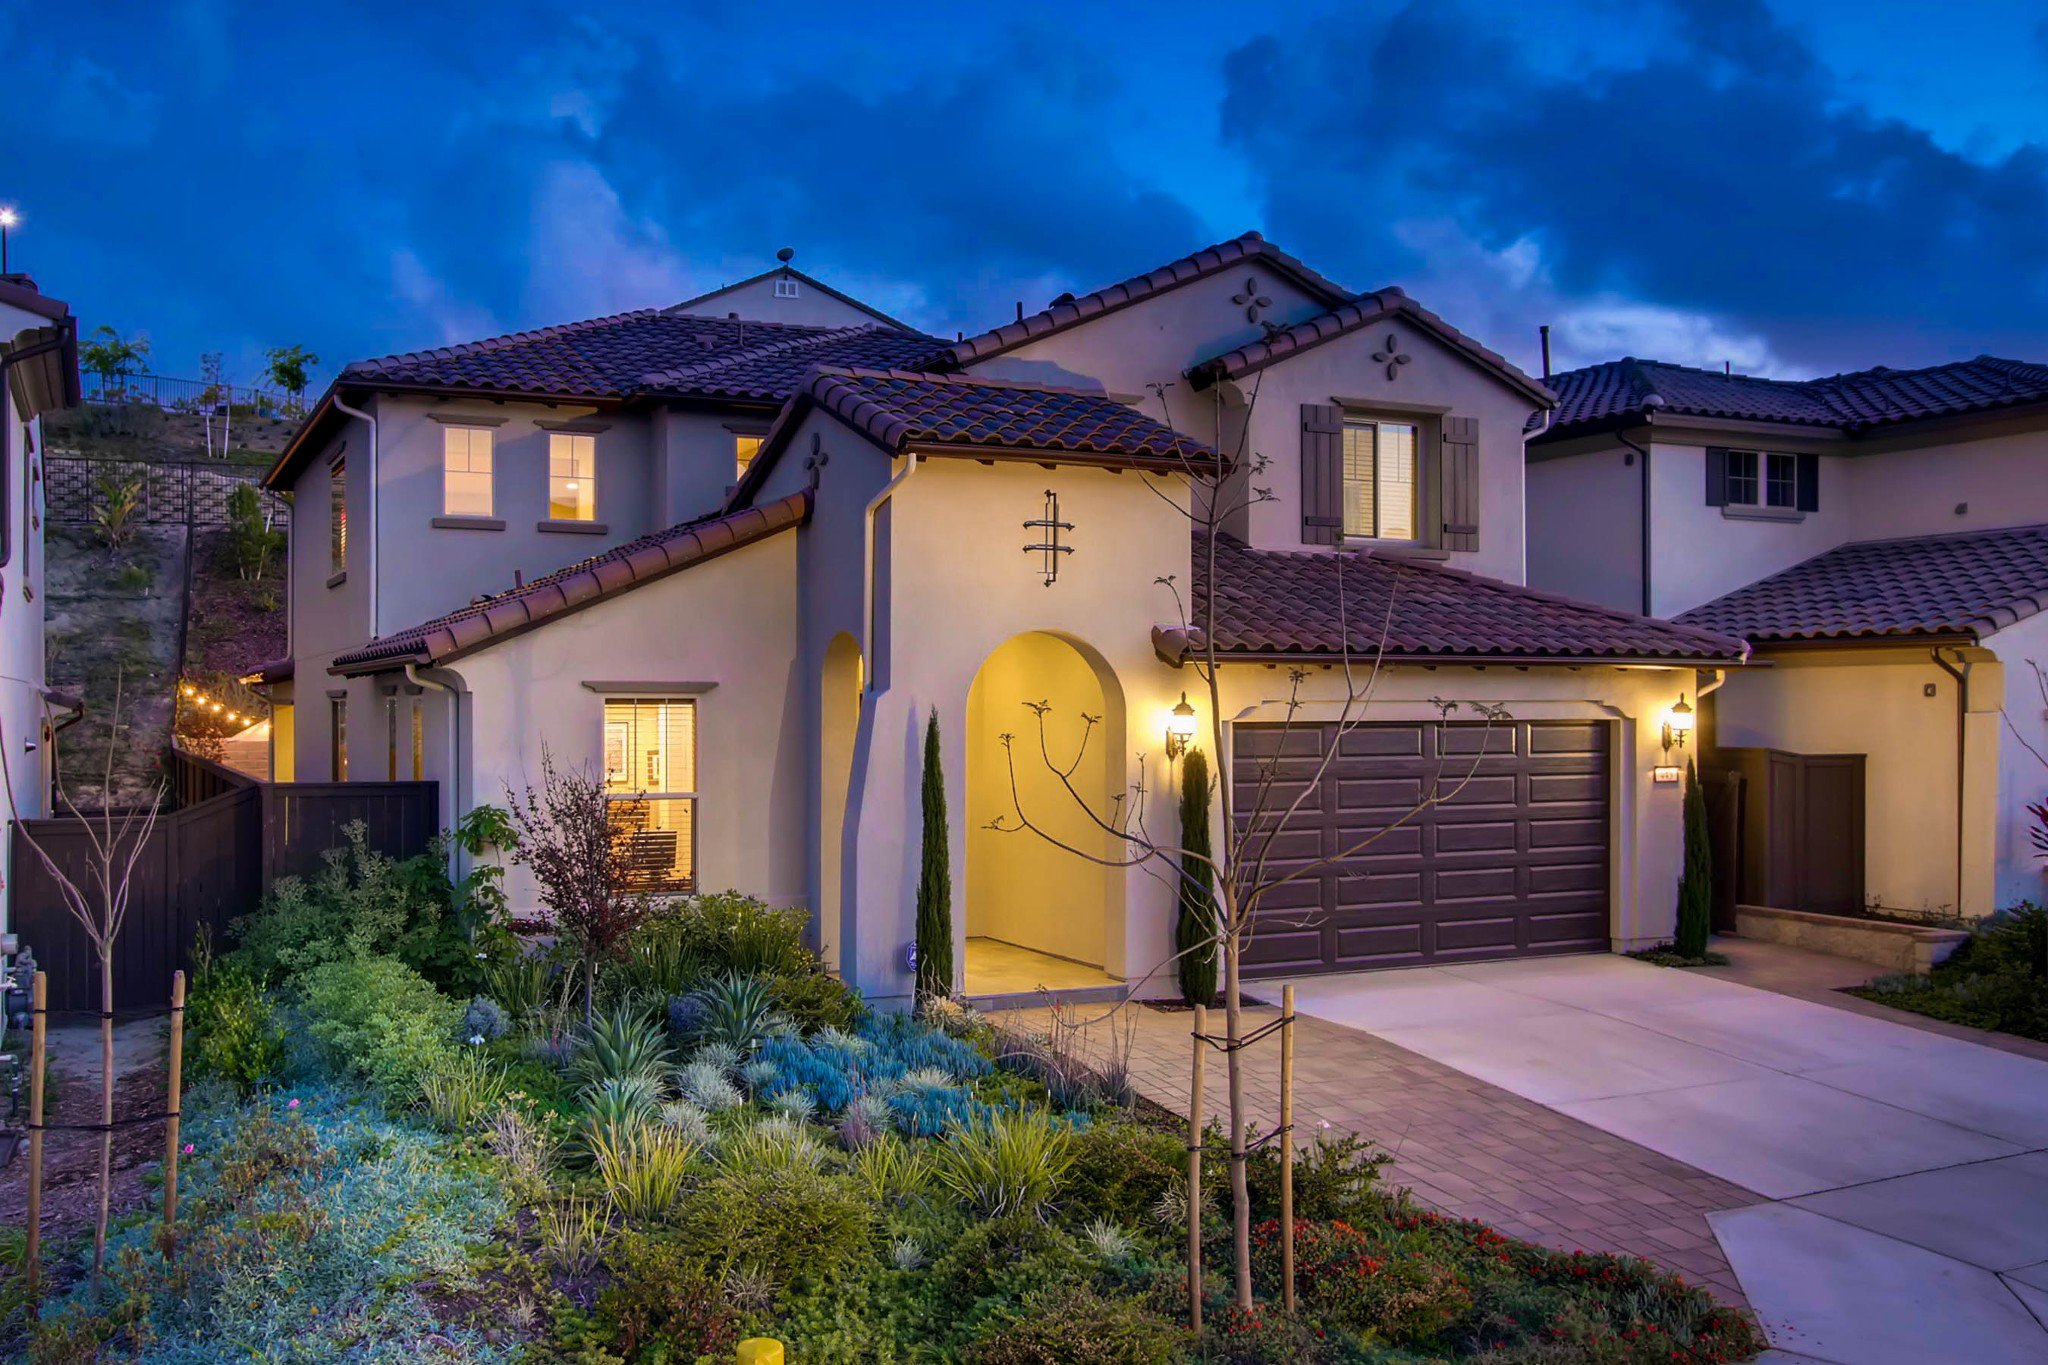 Main Photo: Residential for sale : 5 bedrooms : 443 Machado Way in Vista